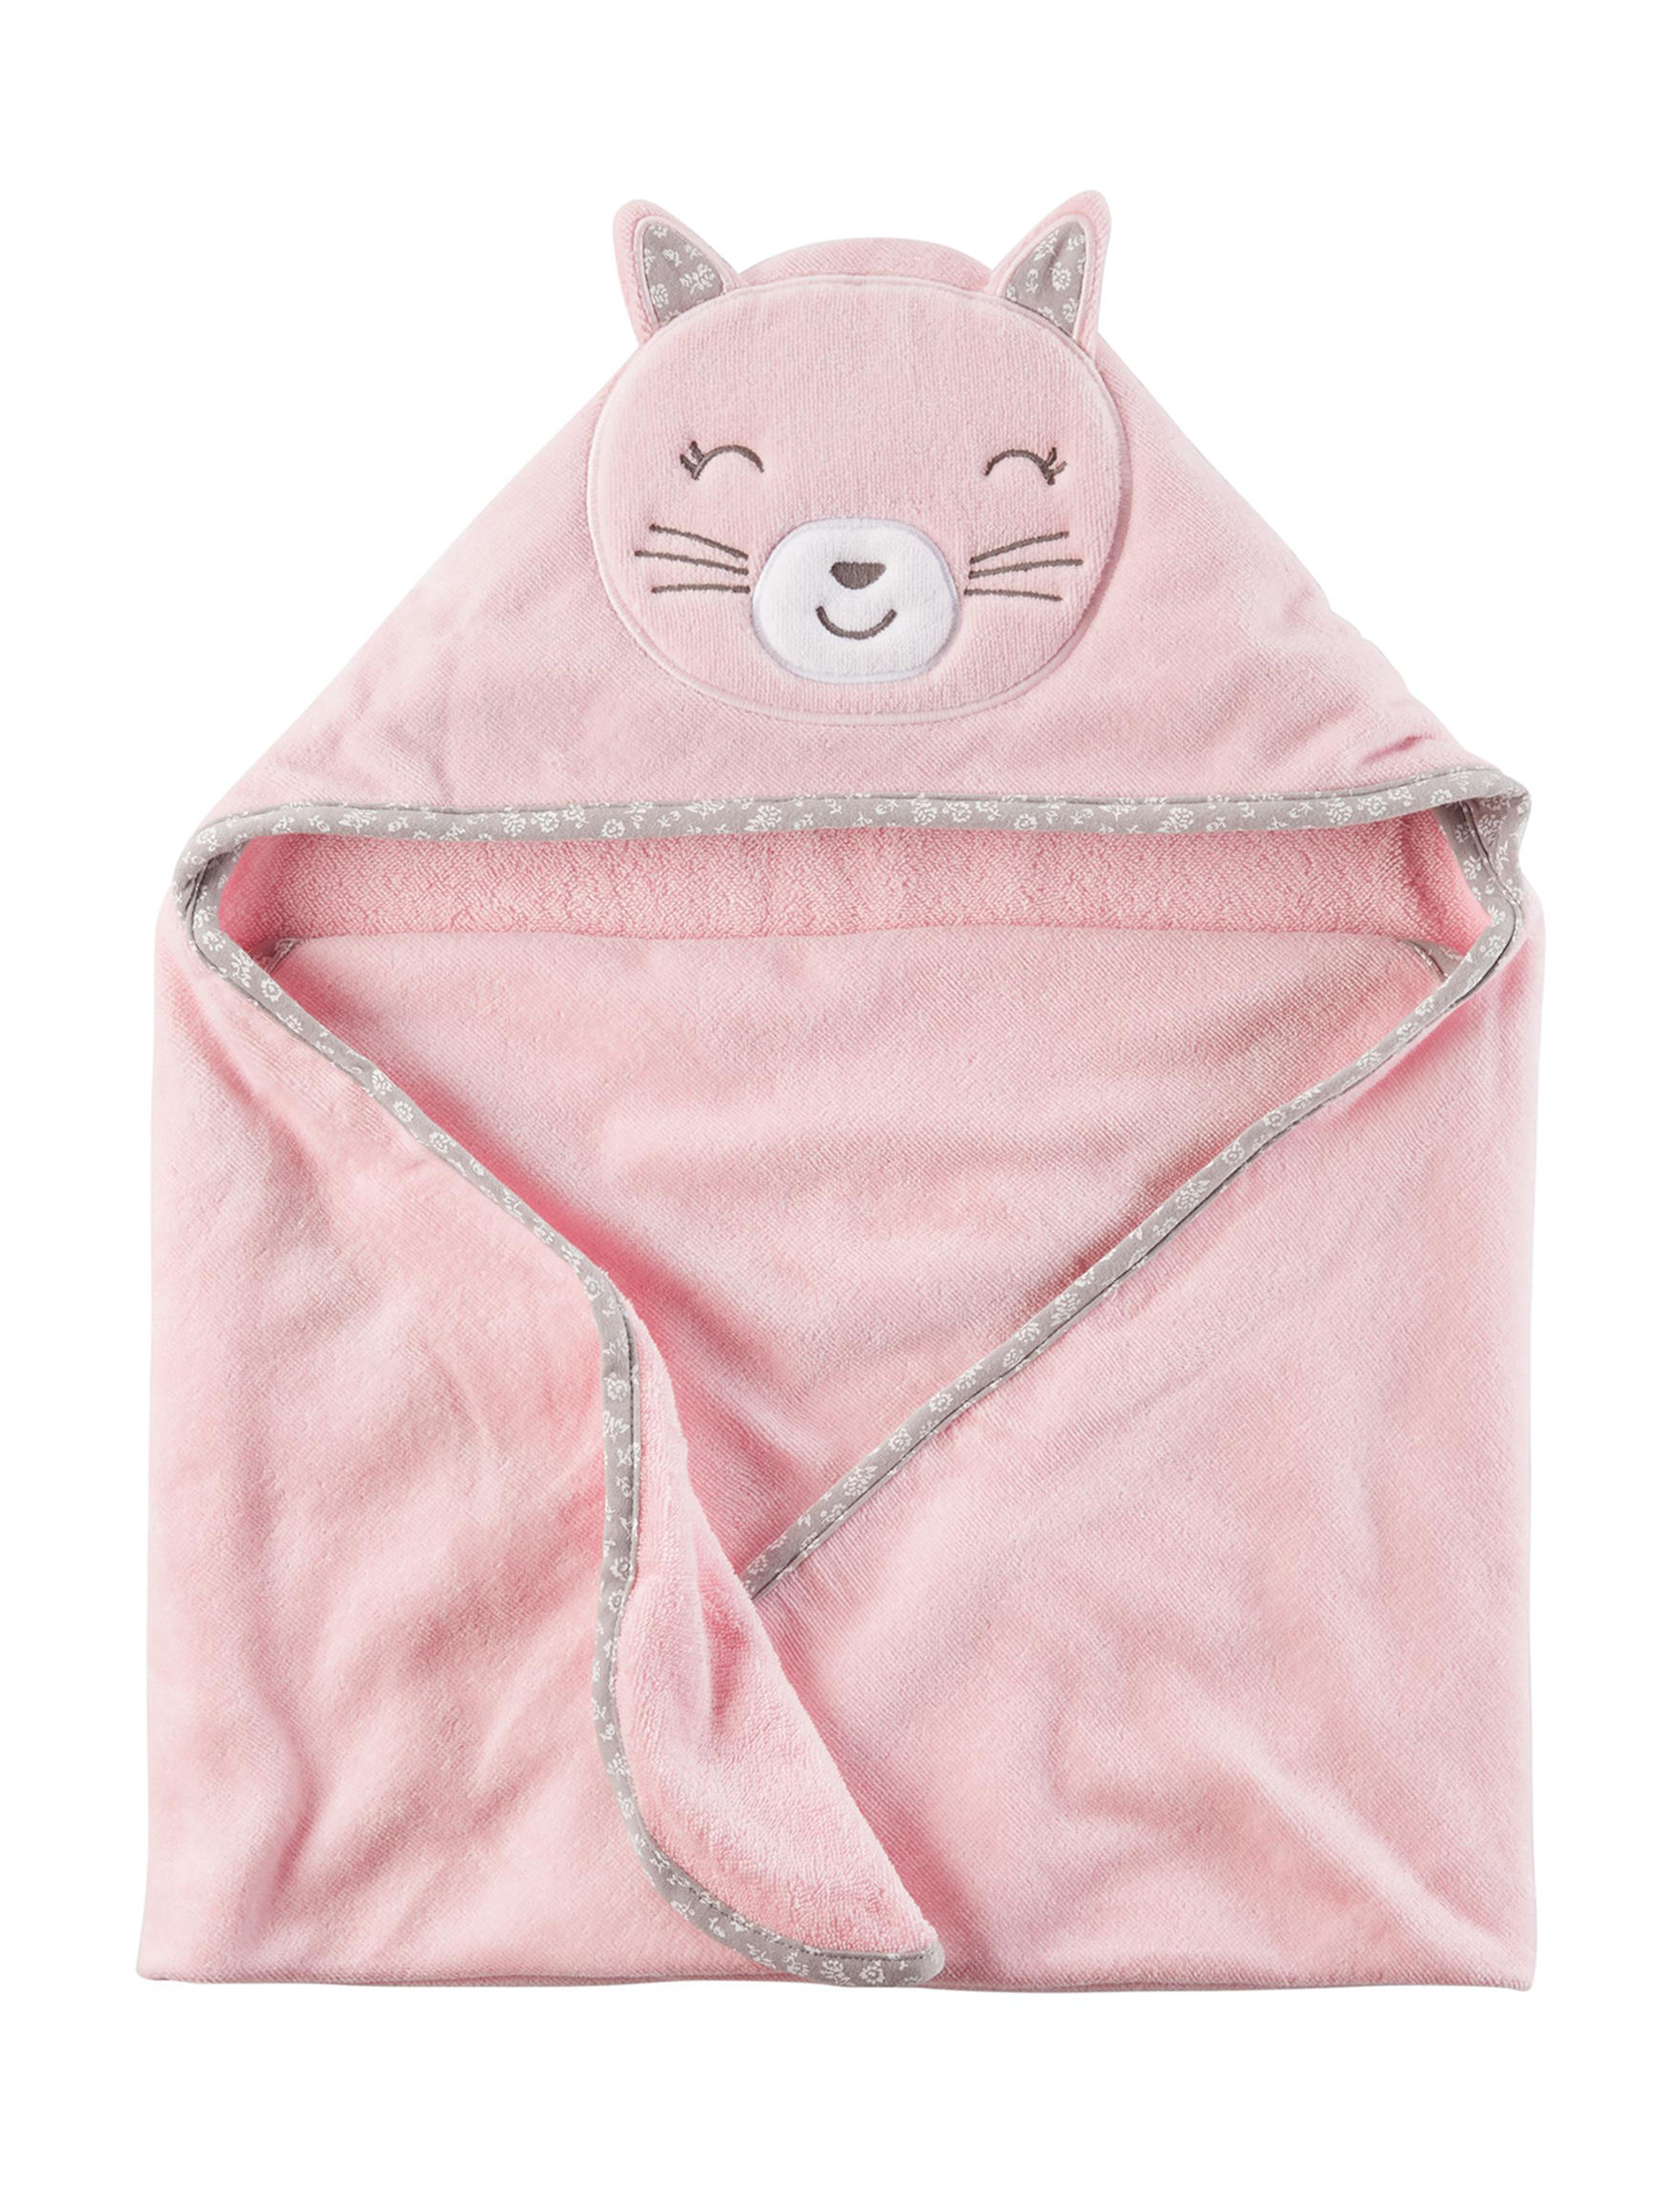 Carter's Pink Hooded Towels